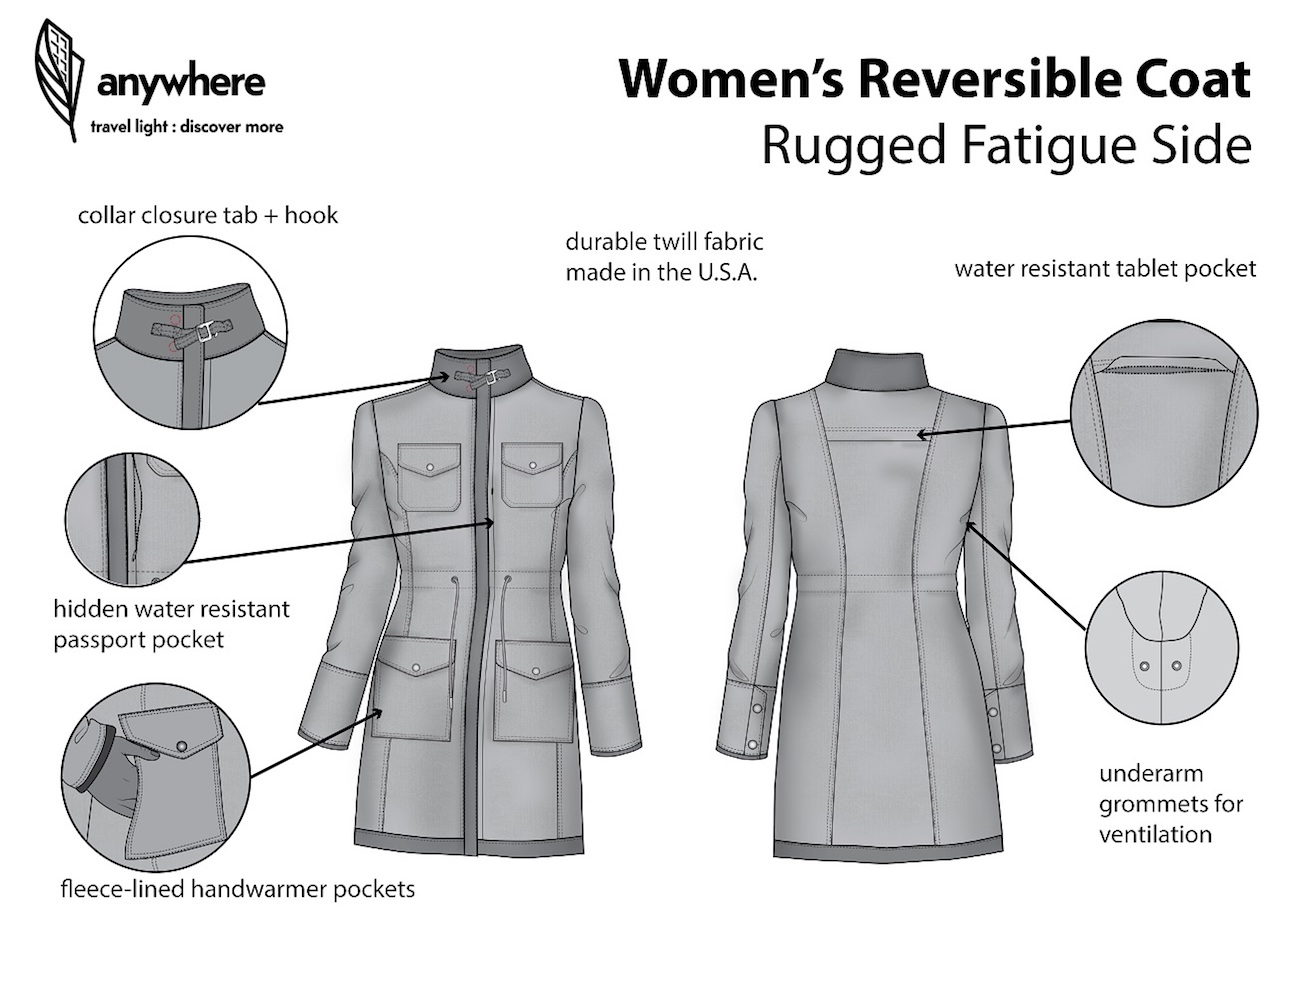 Premium Travel Jackets designed to go anywhere